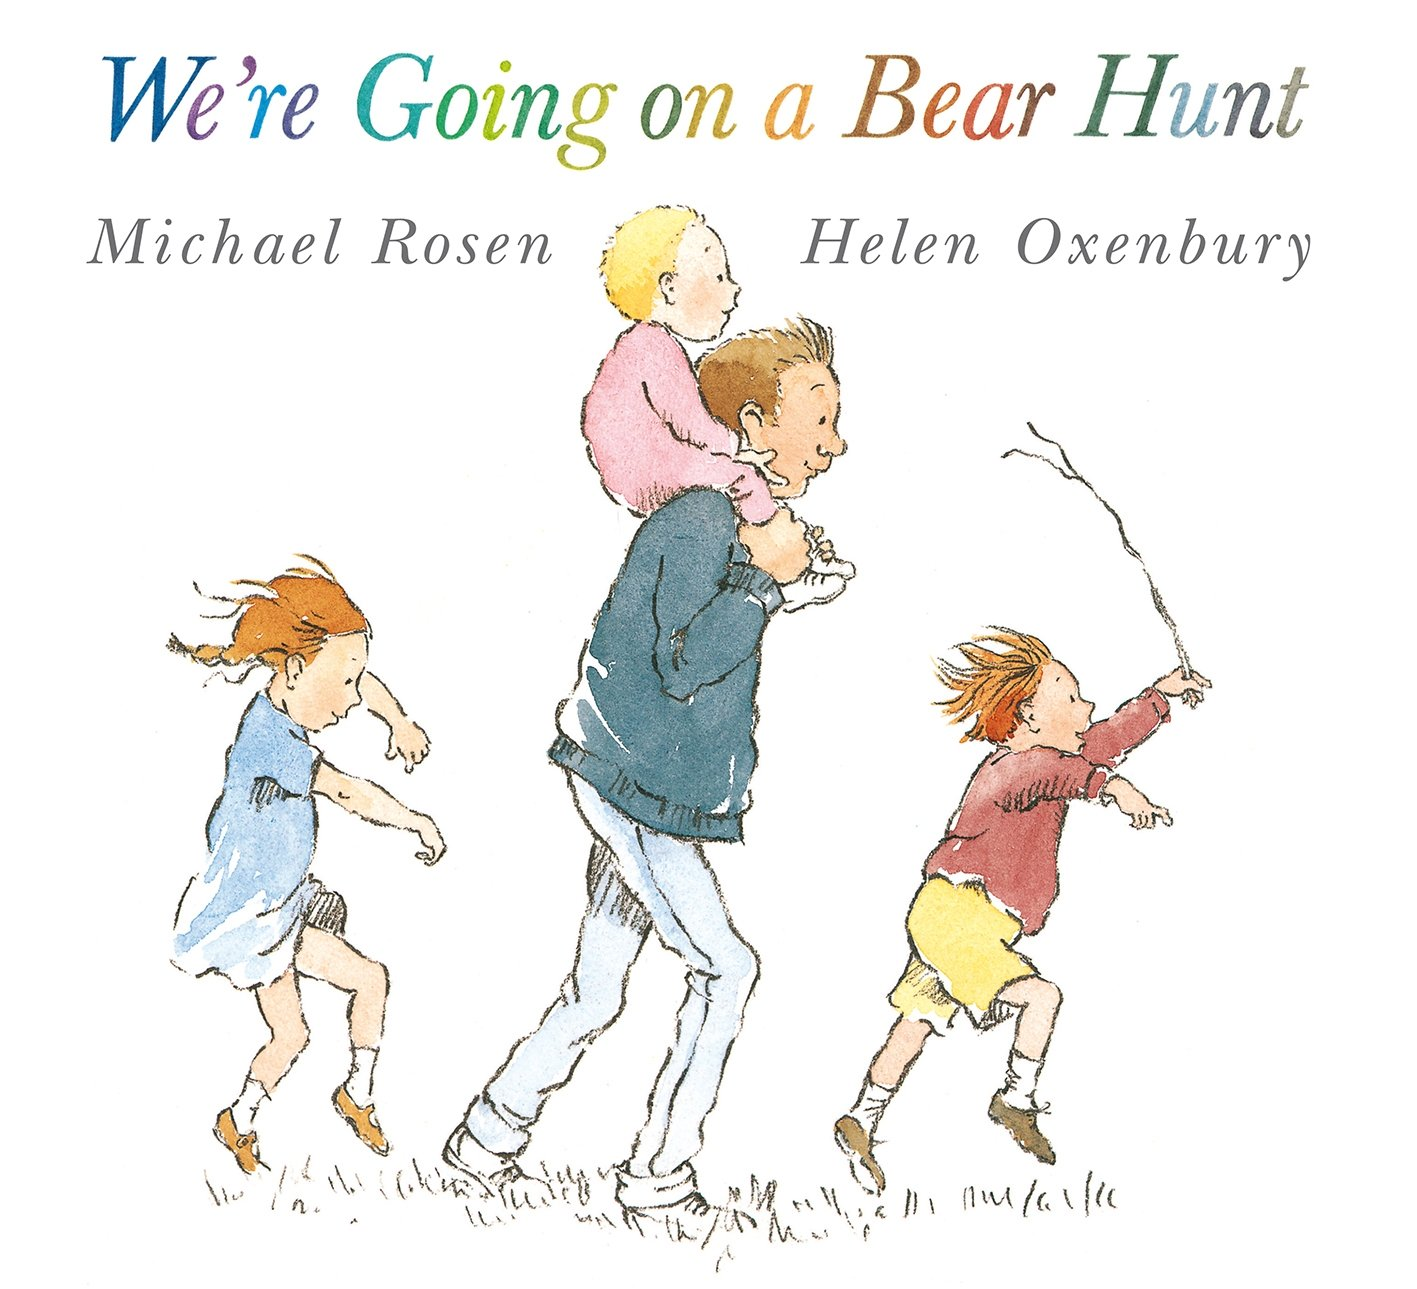 「we're going on a bear hunt book」の画像検索結果